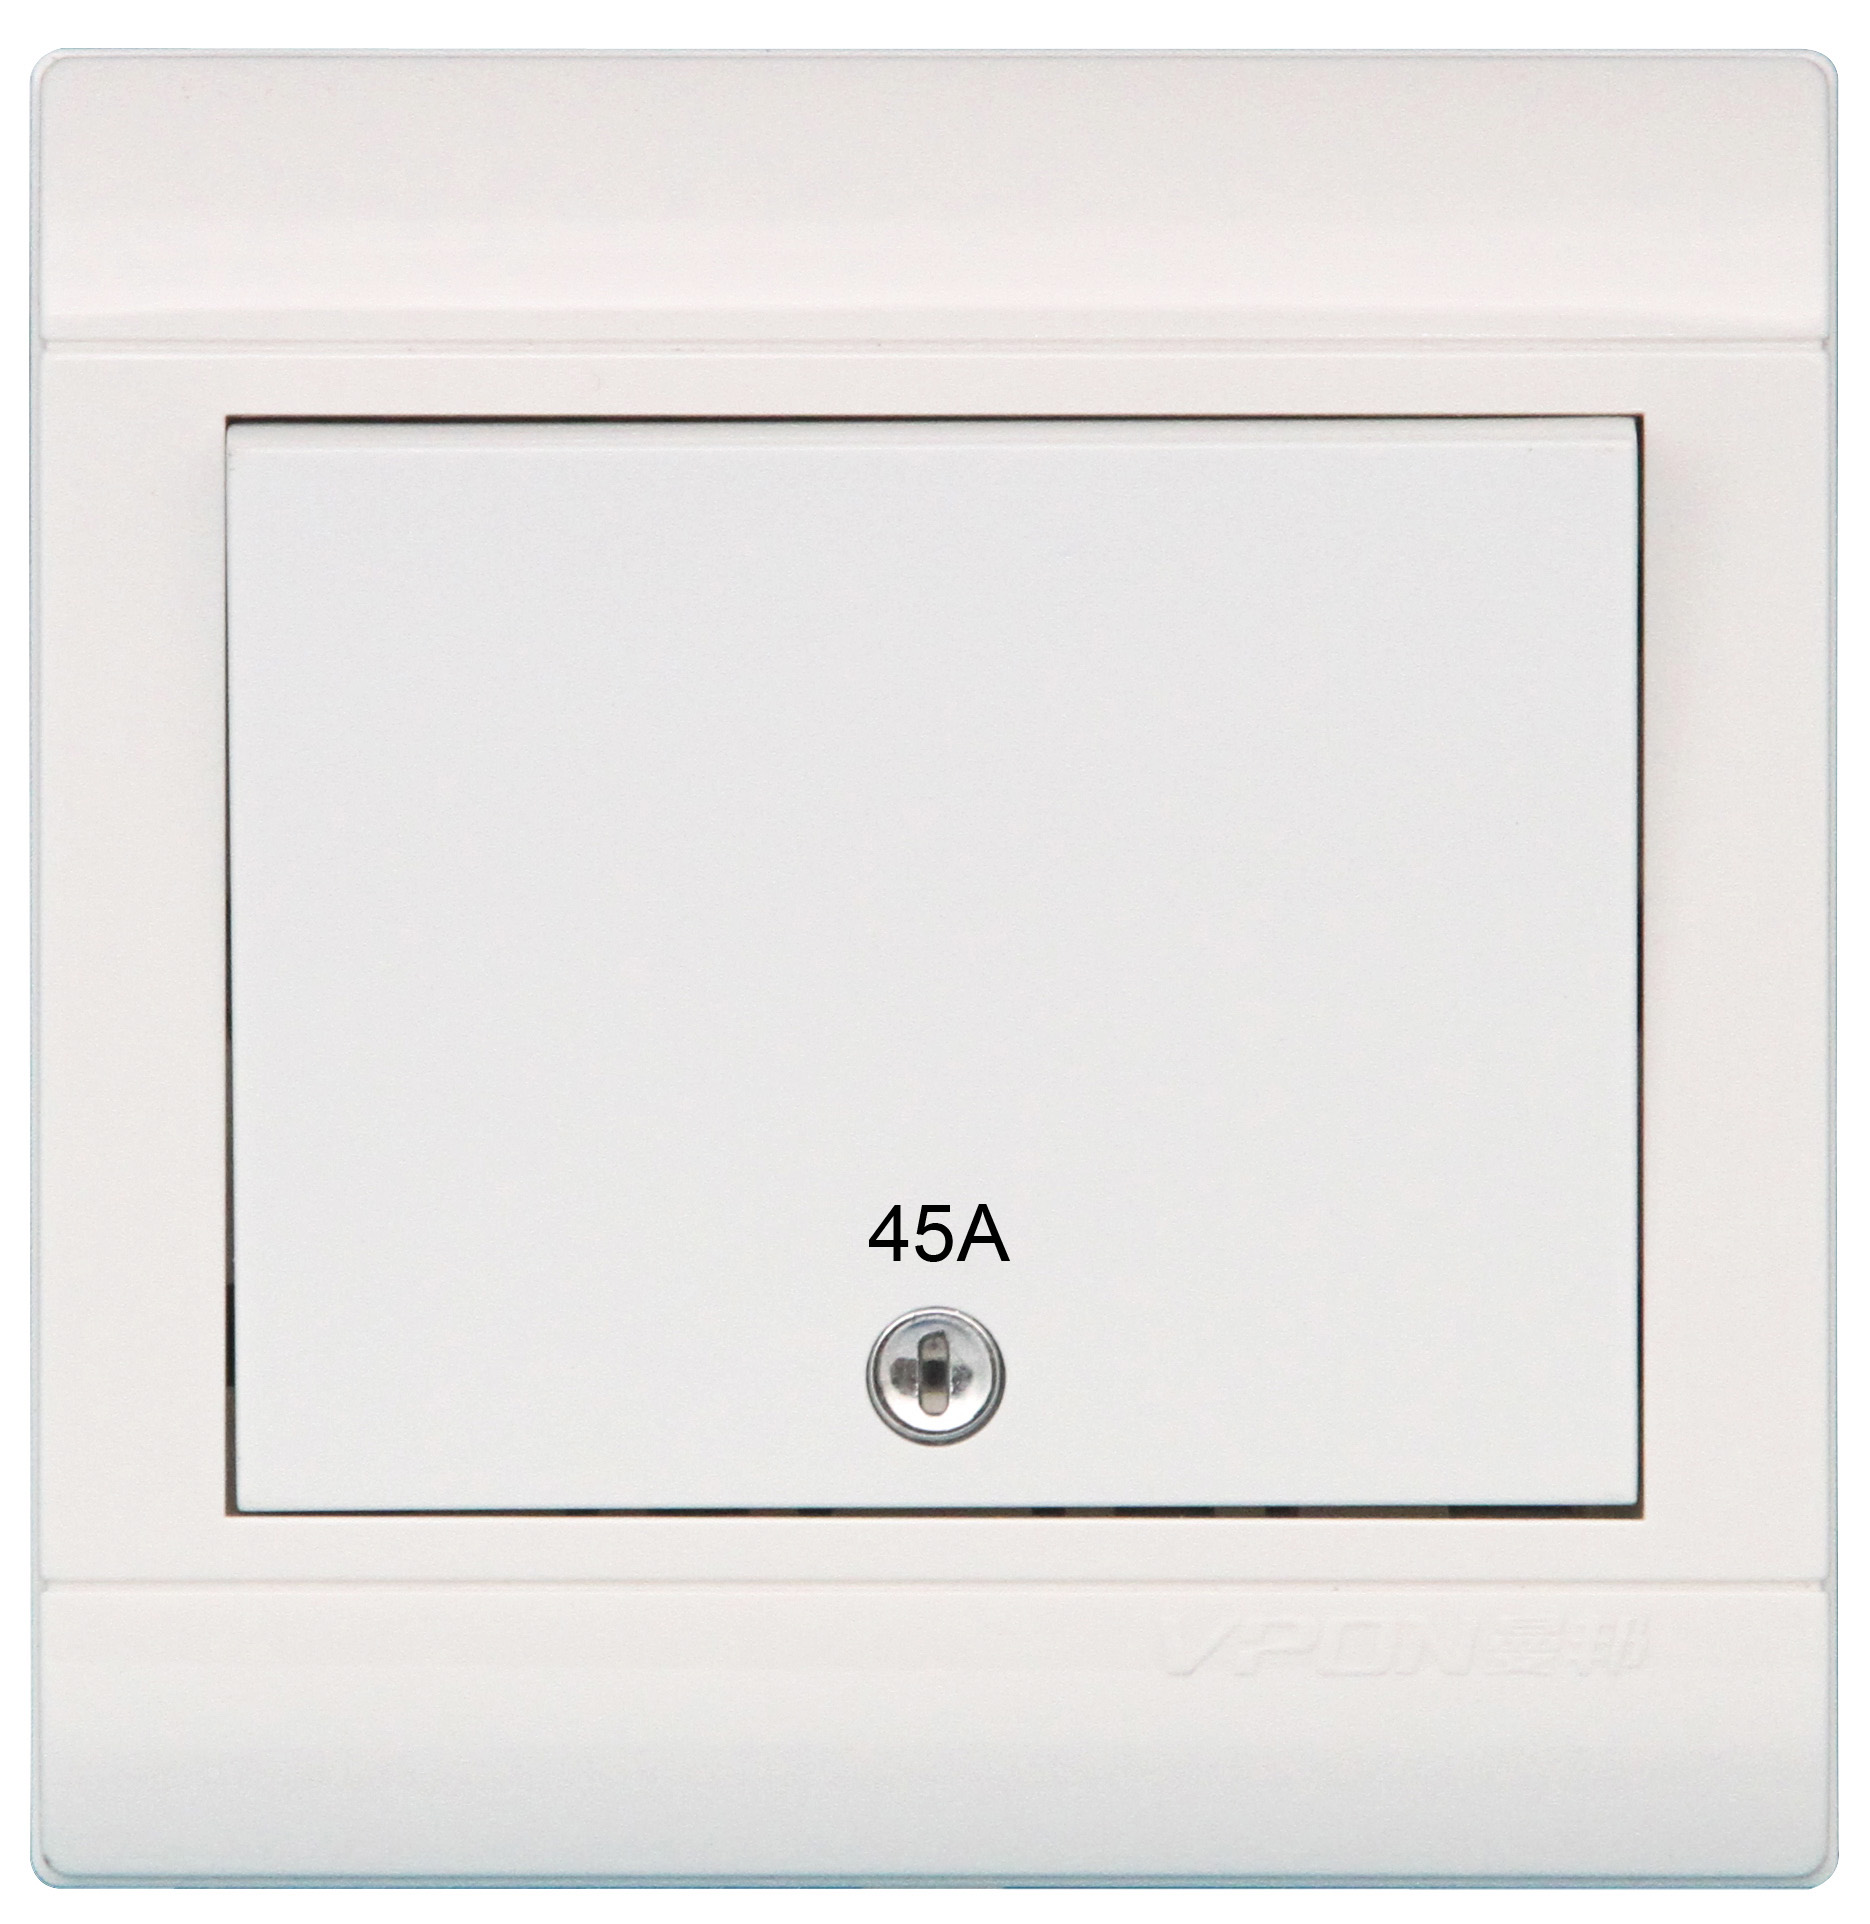 45A Double Pole switch with light